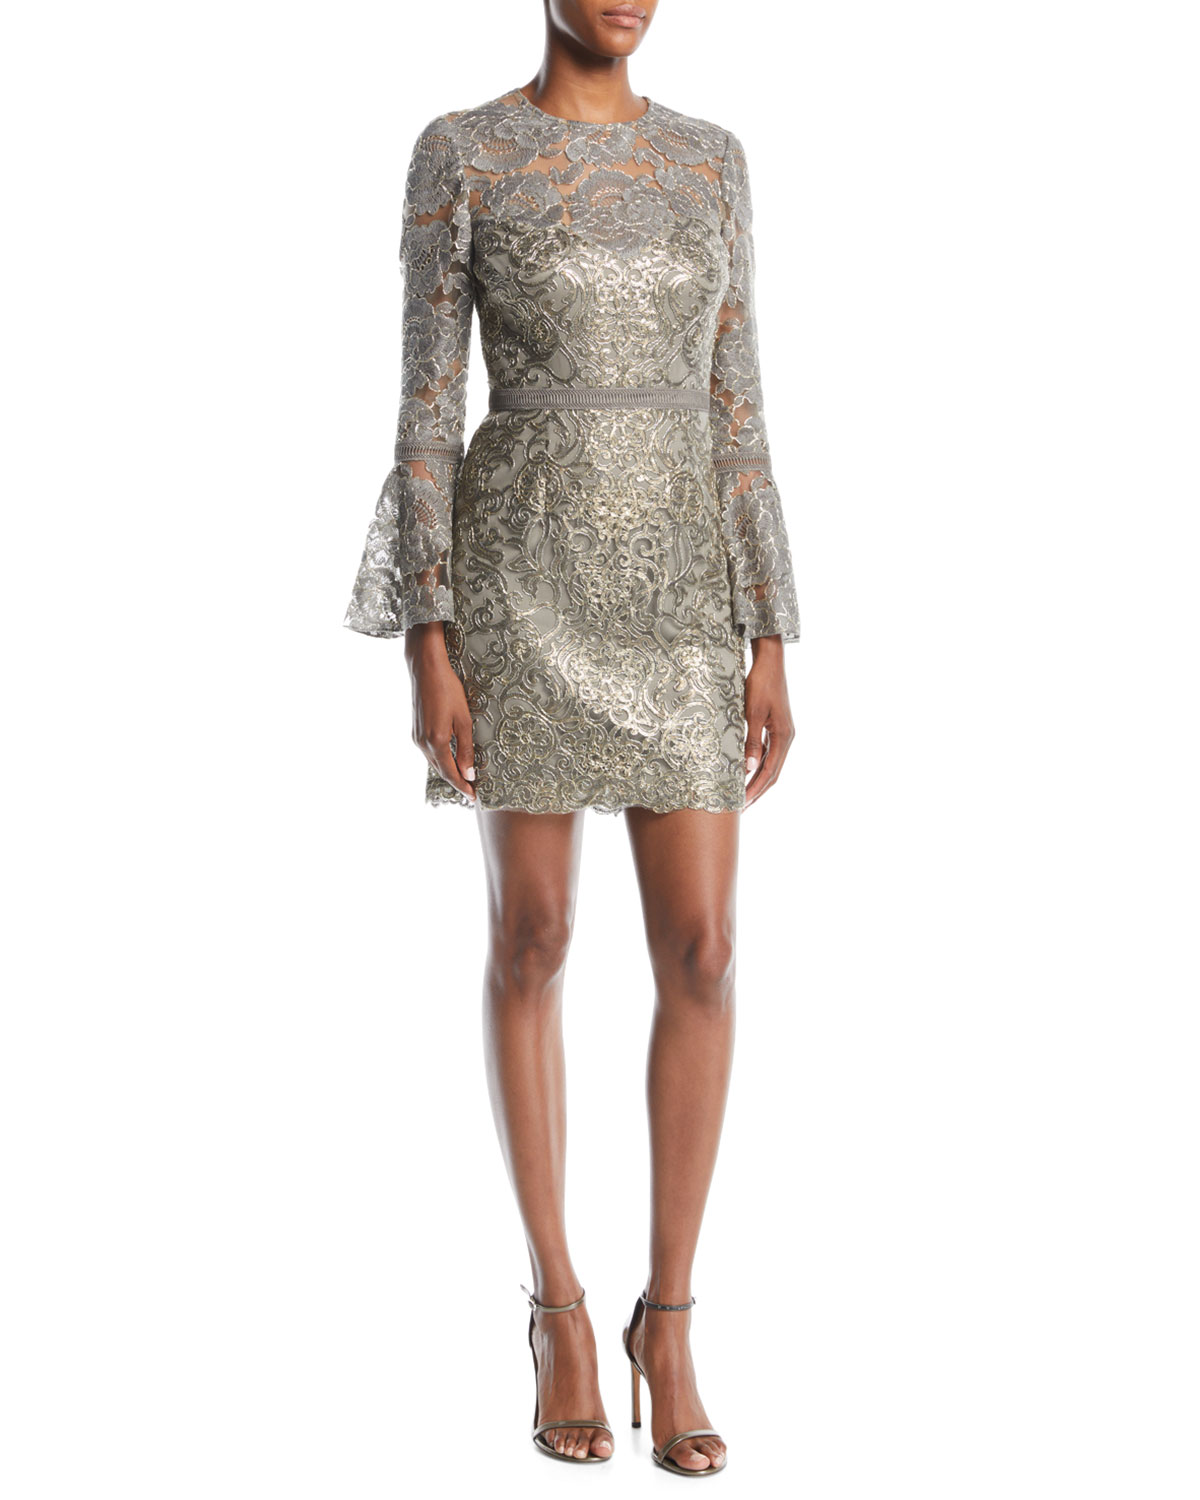 a83ae9b6ba66f9 Tadashi Shoji Somerset Sequin Lace Dress w  Bell Sleeves   Embroidery